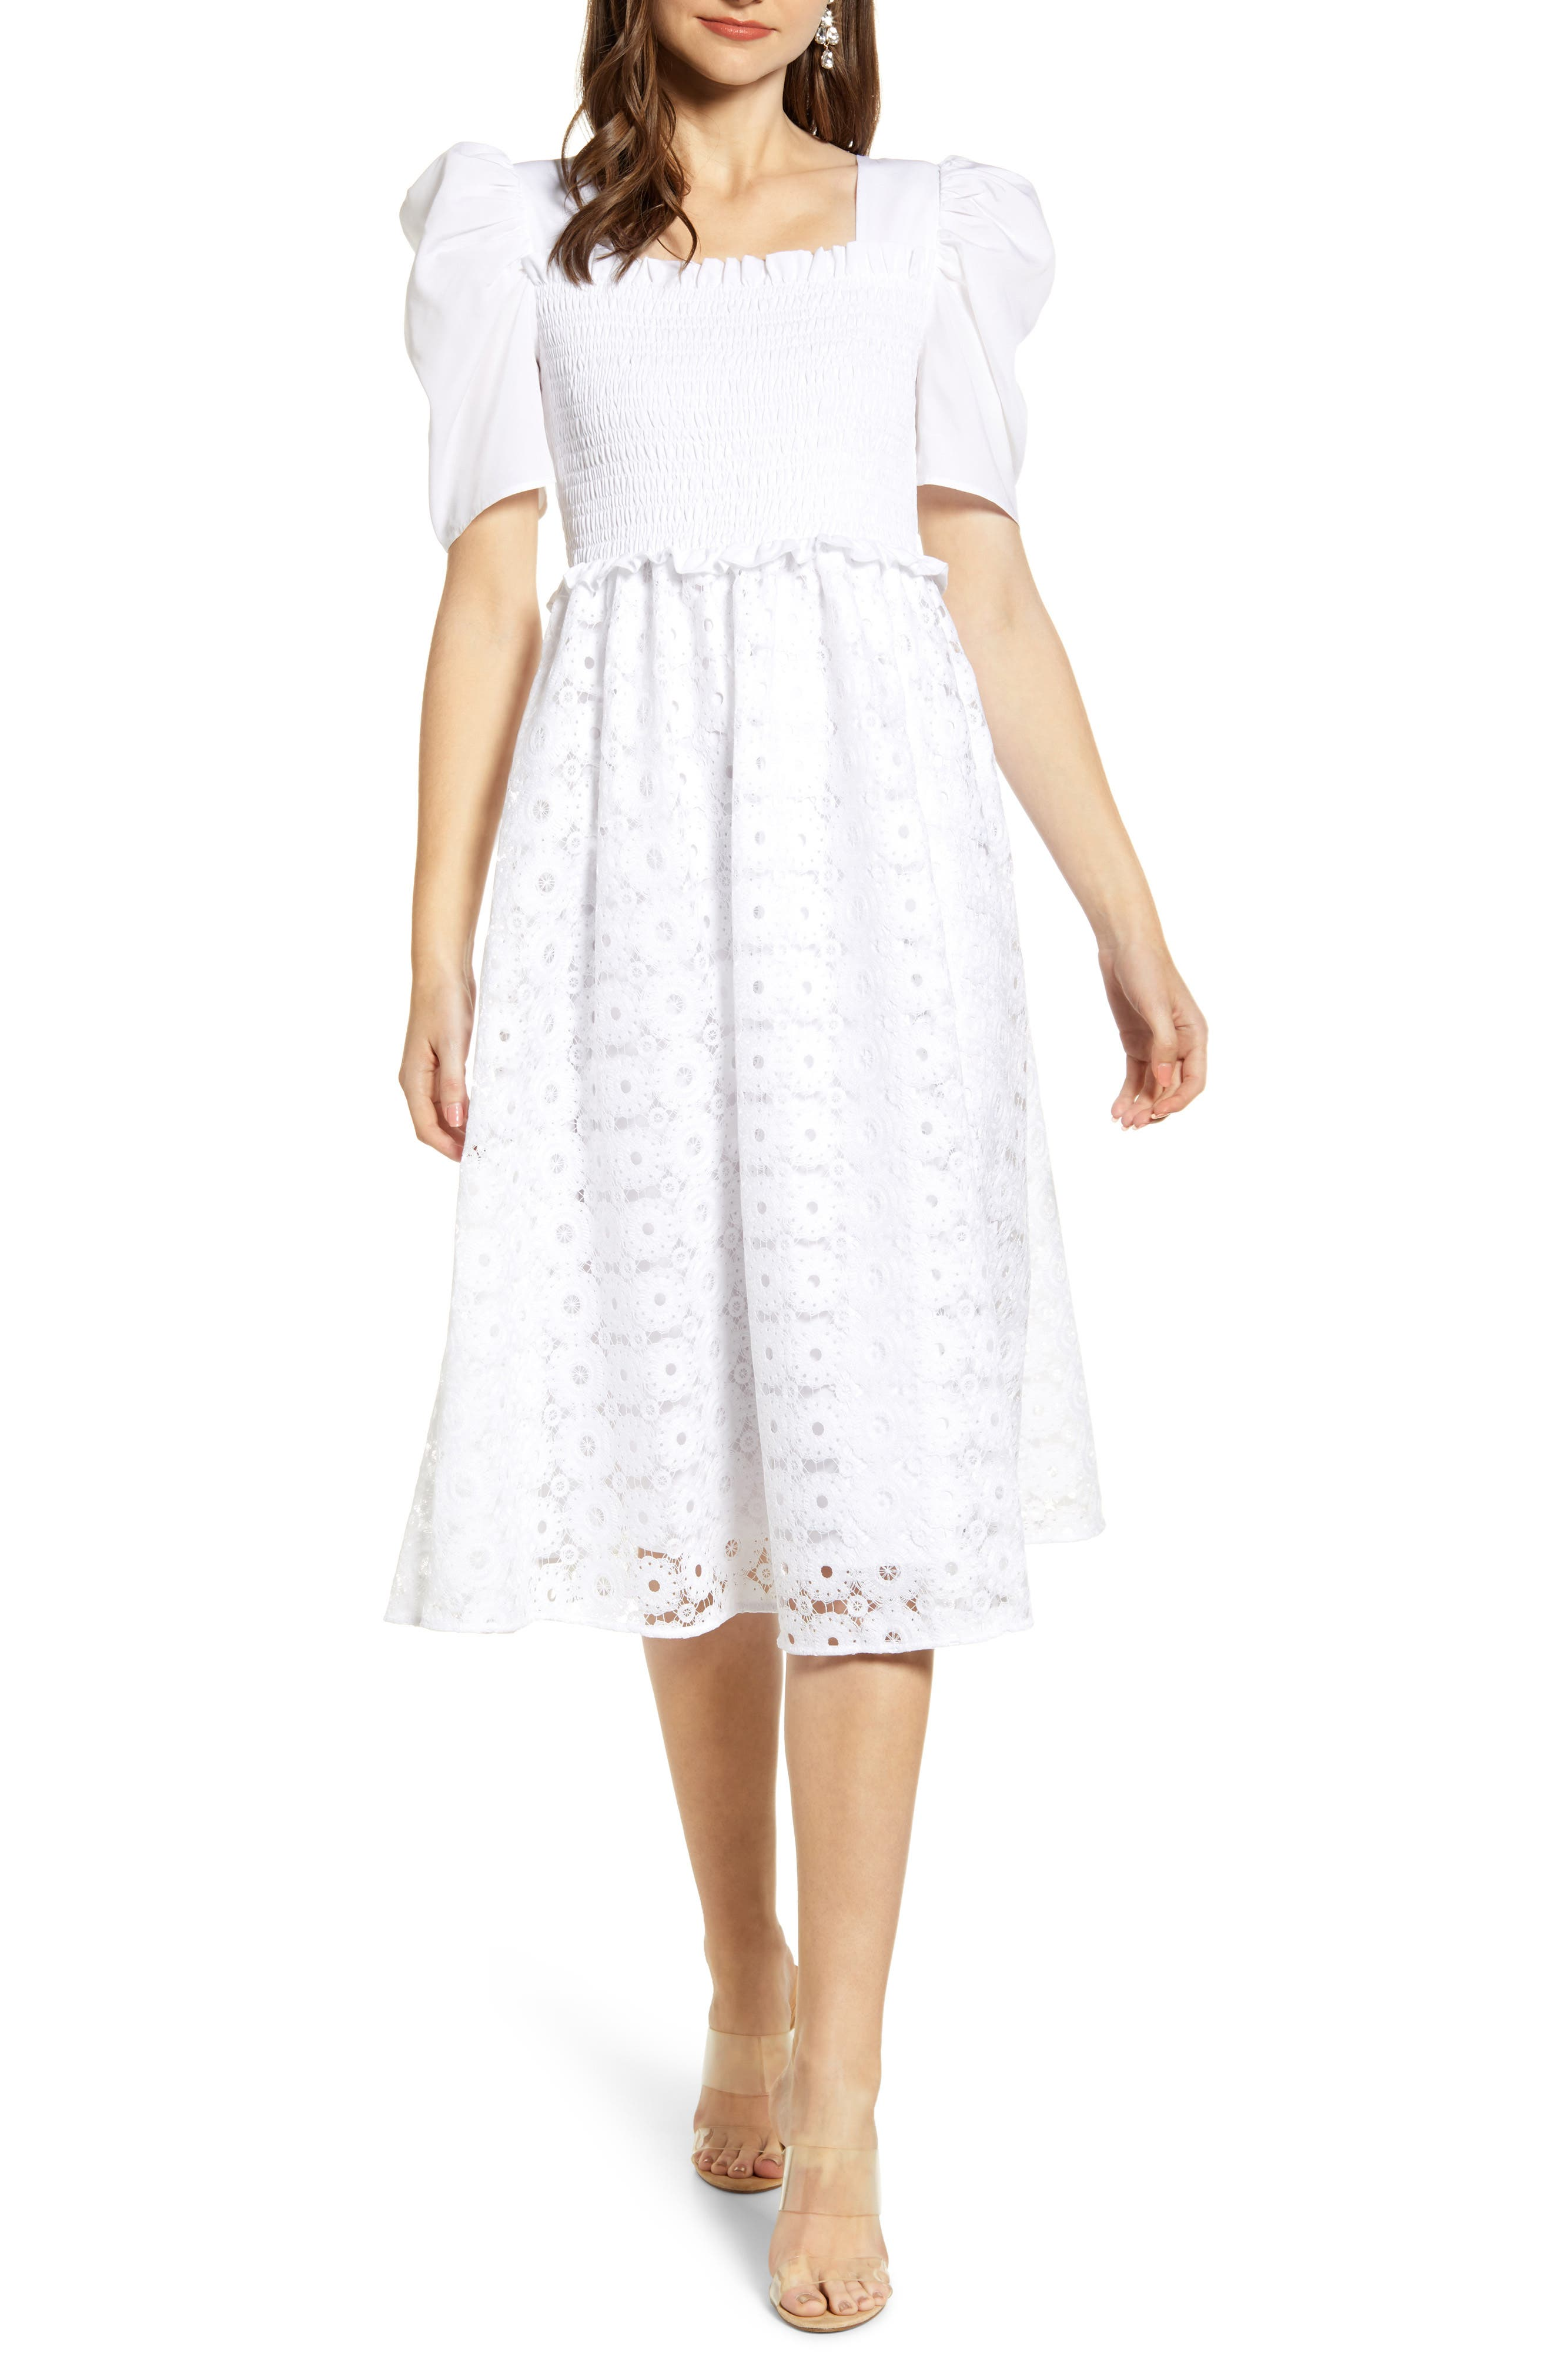 Rachel Parcell Smocked Waist A-Line Dress, White (Nordstrom Exclusive)